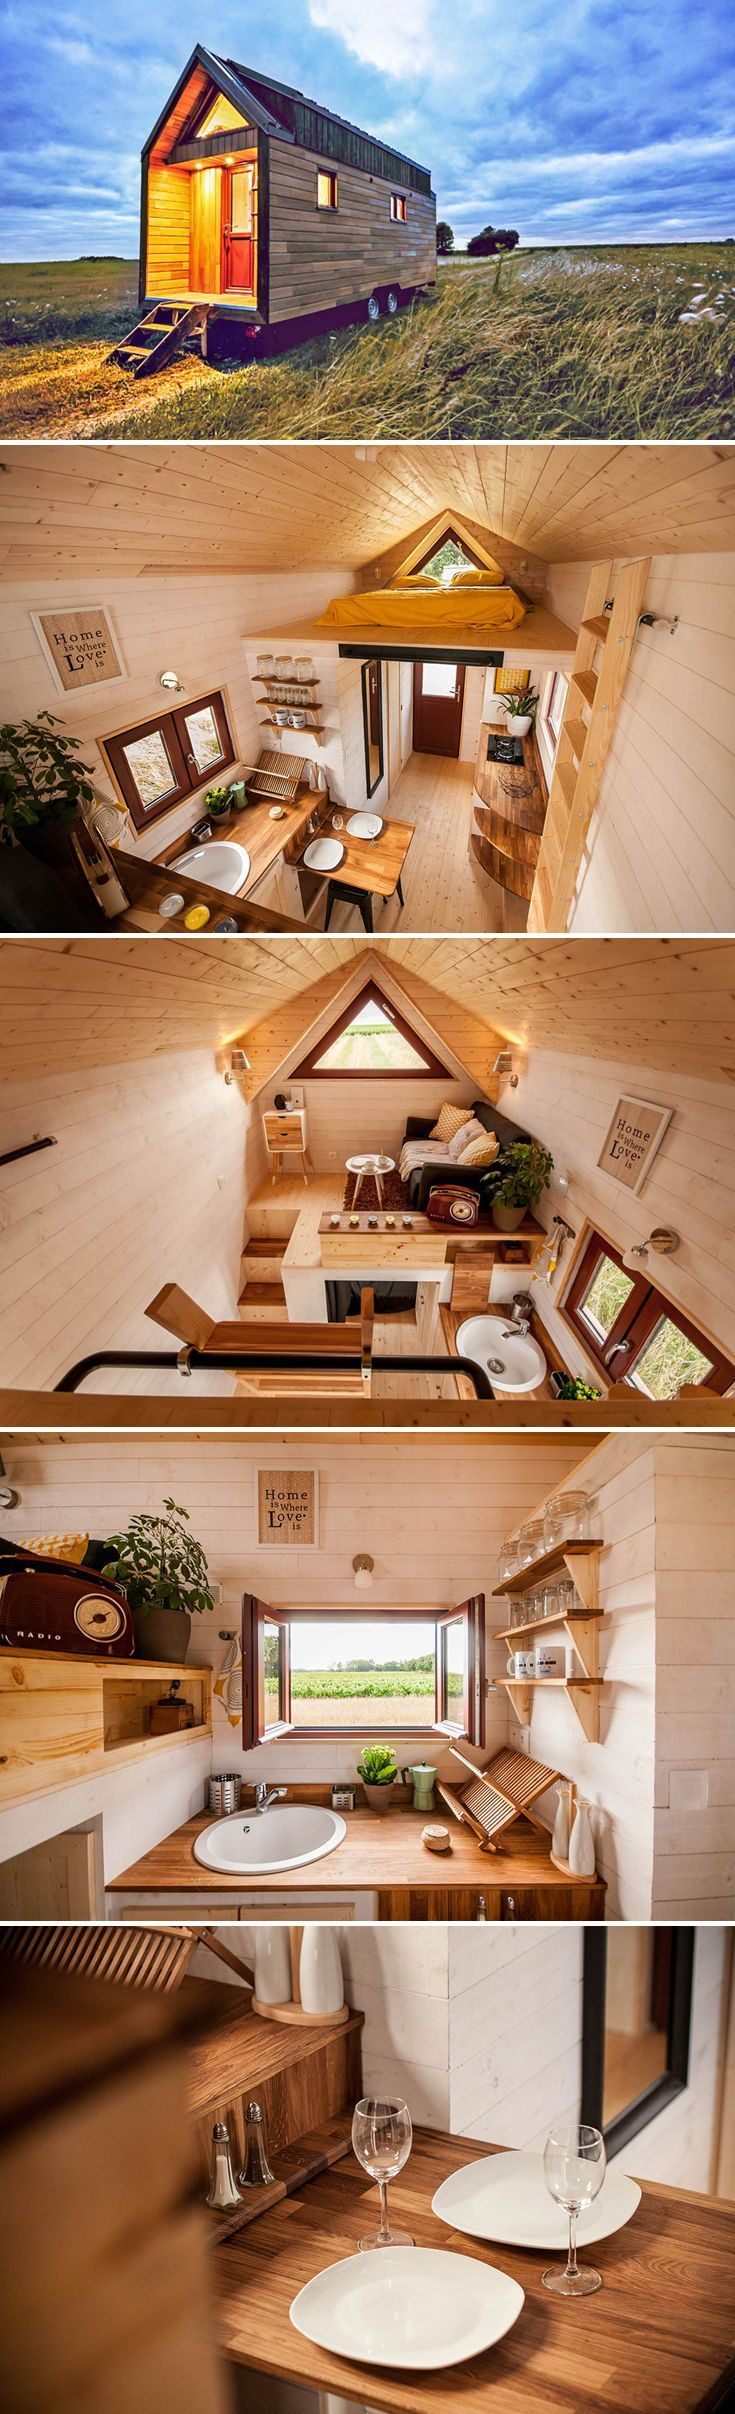 Odyssee by Baluchon - Tiny Living